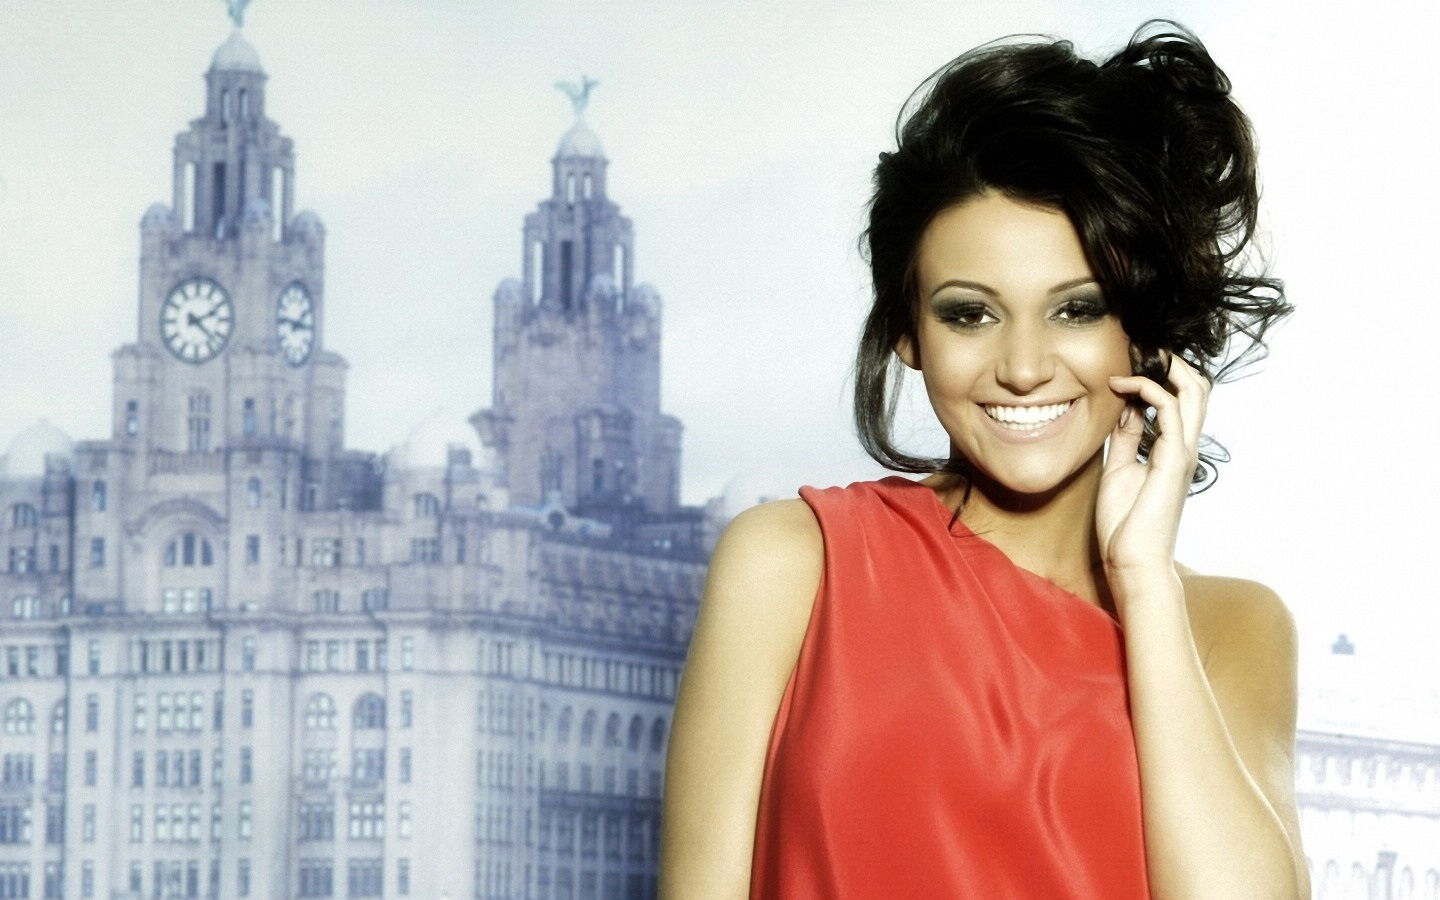 michelle keegan hq wallpapers - photo #18